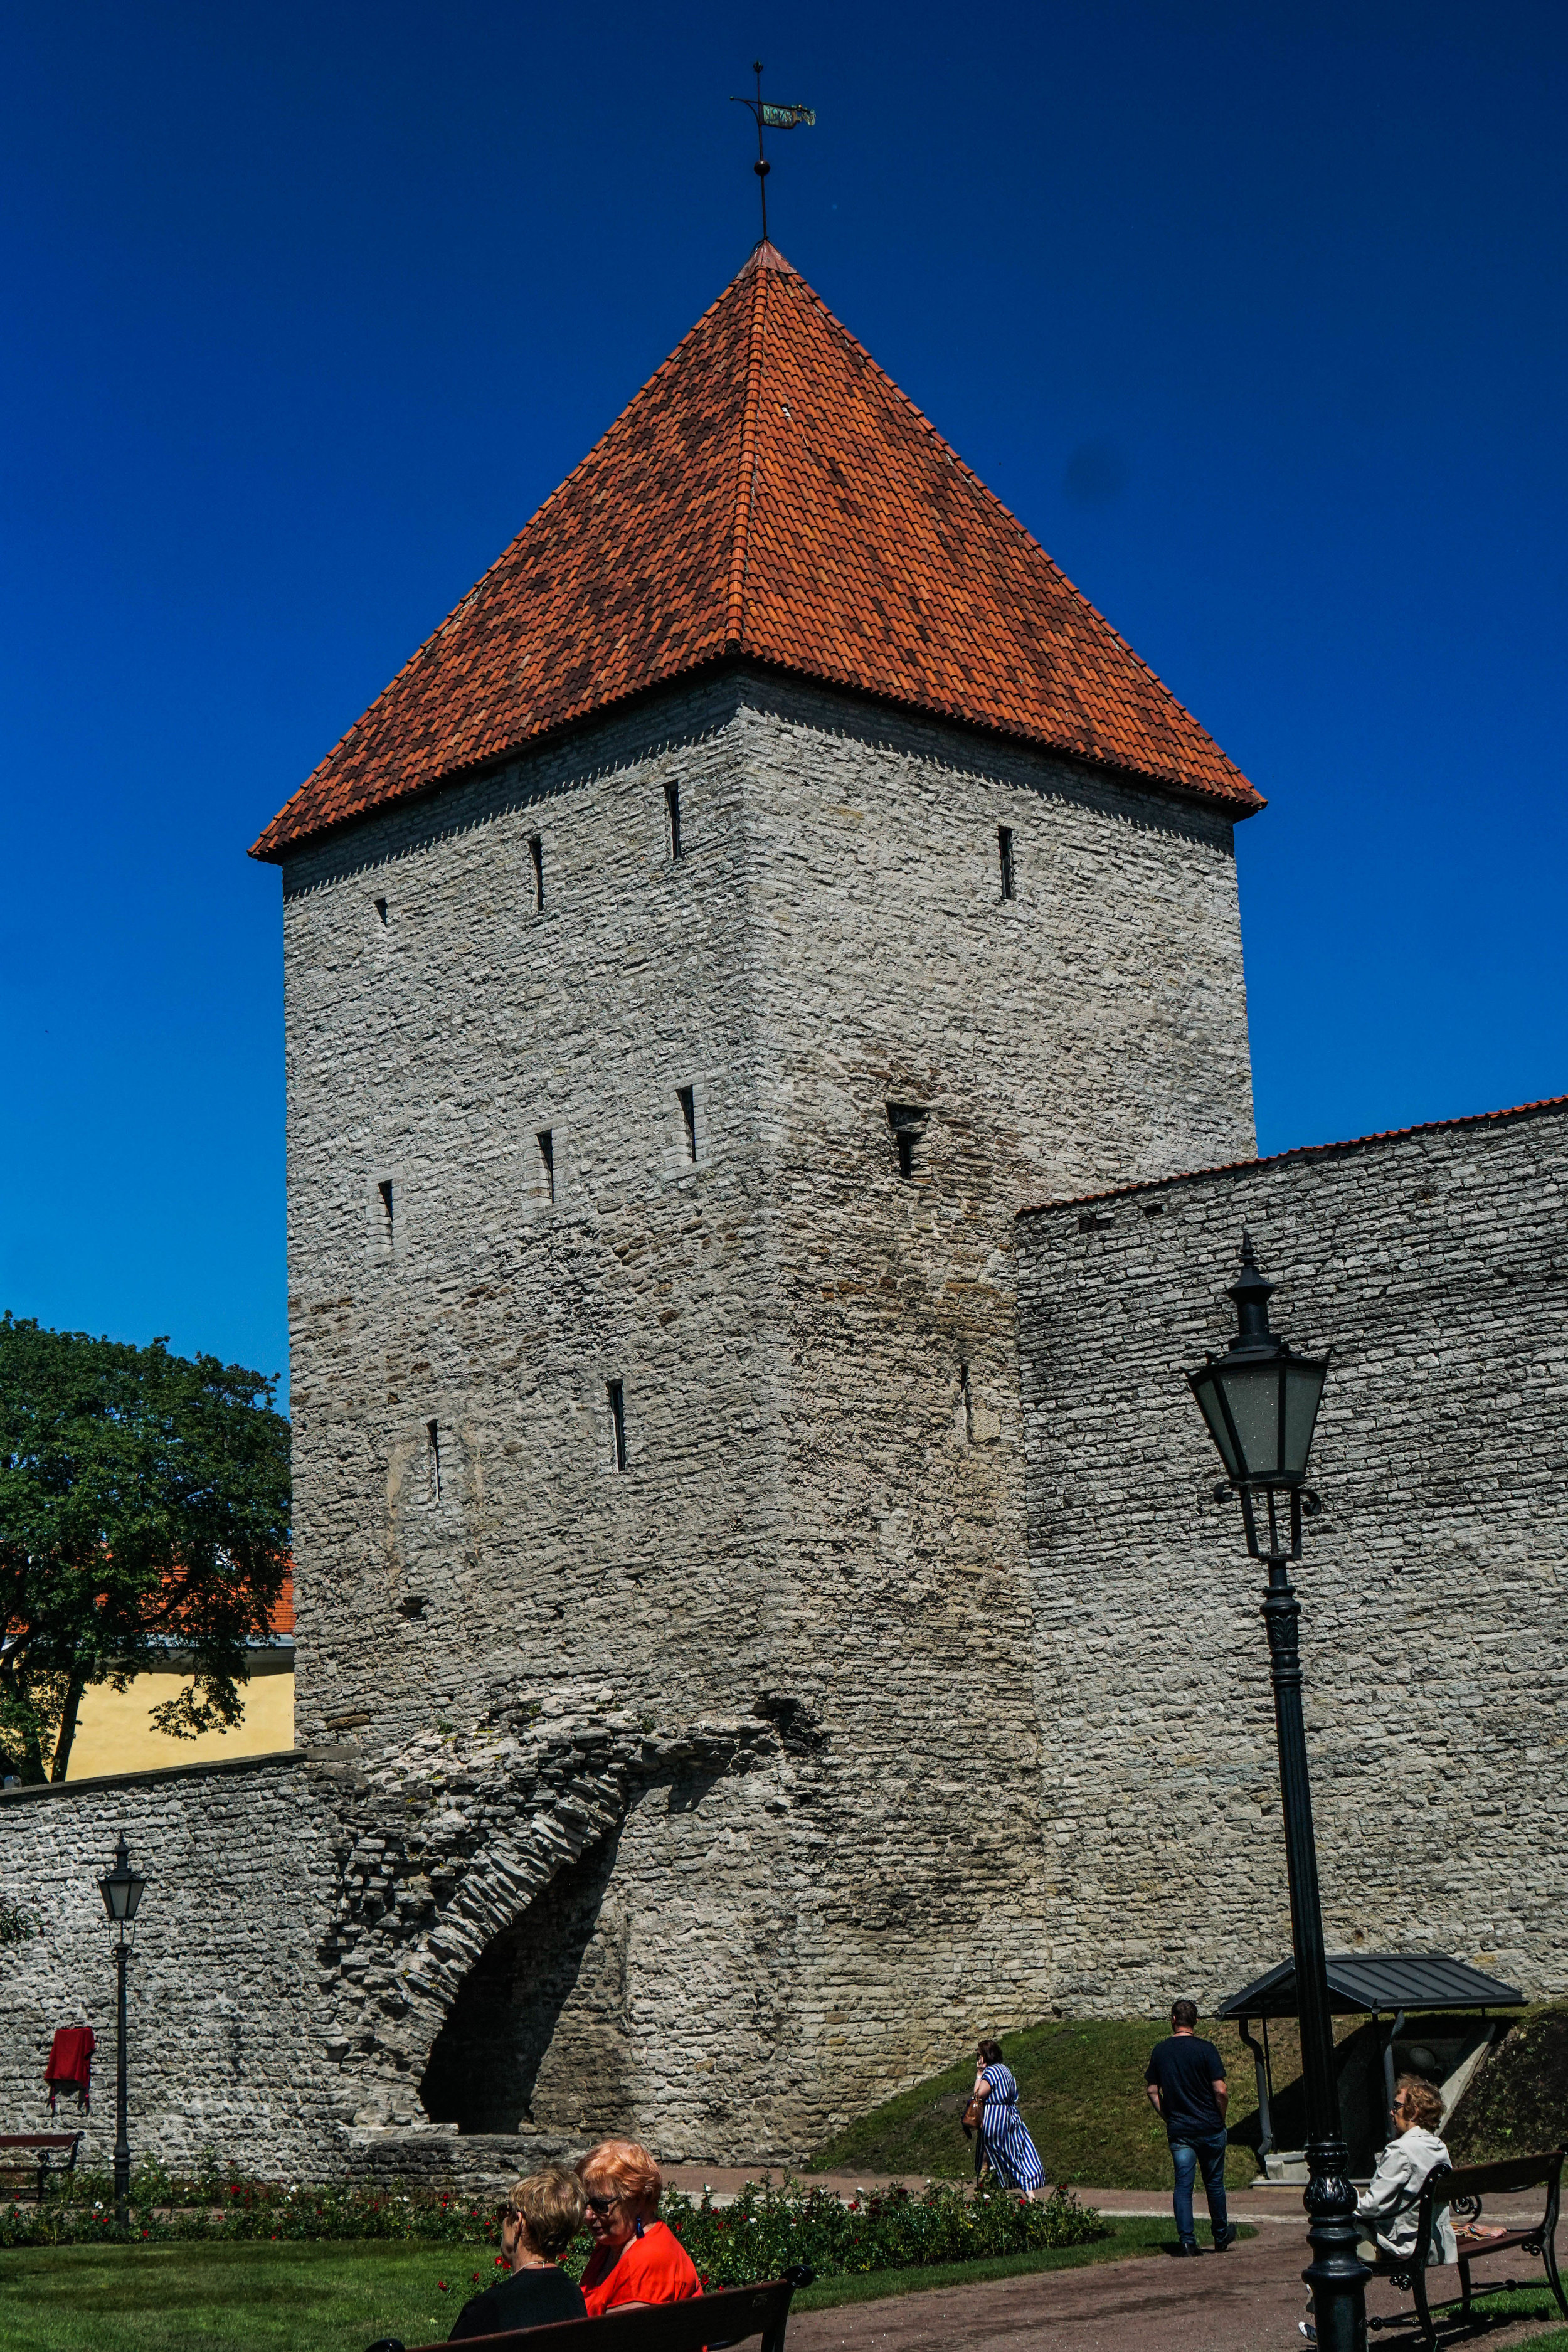 Tower in the walled city.